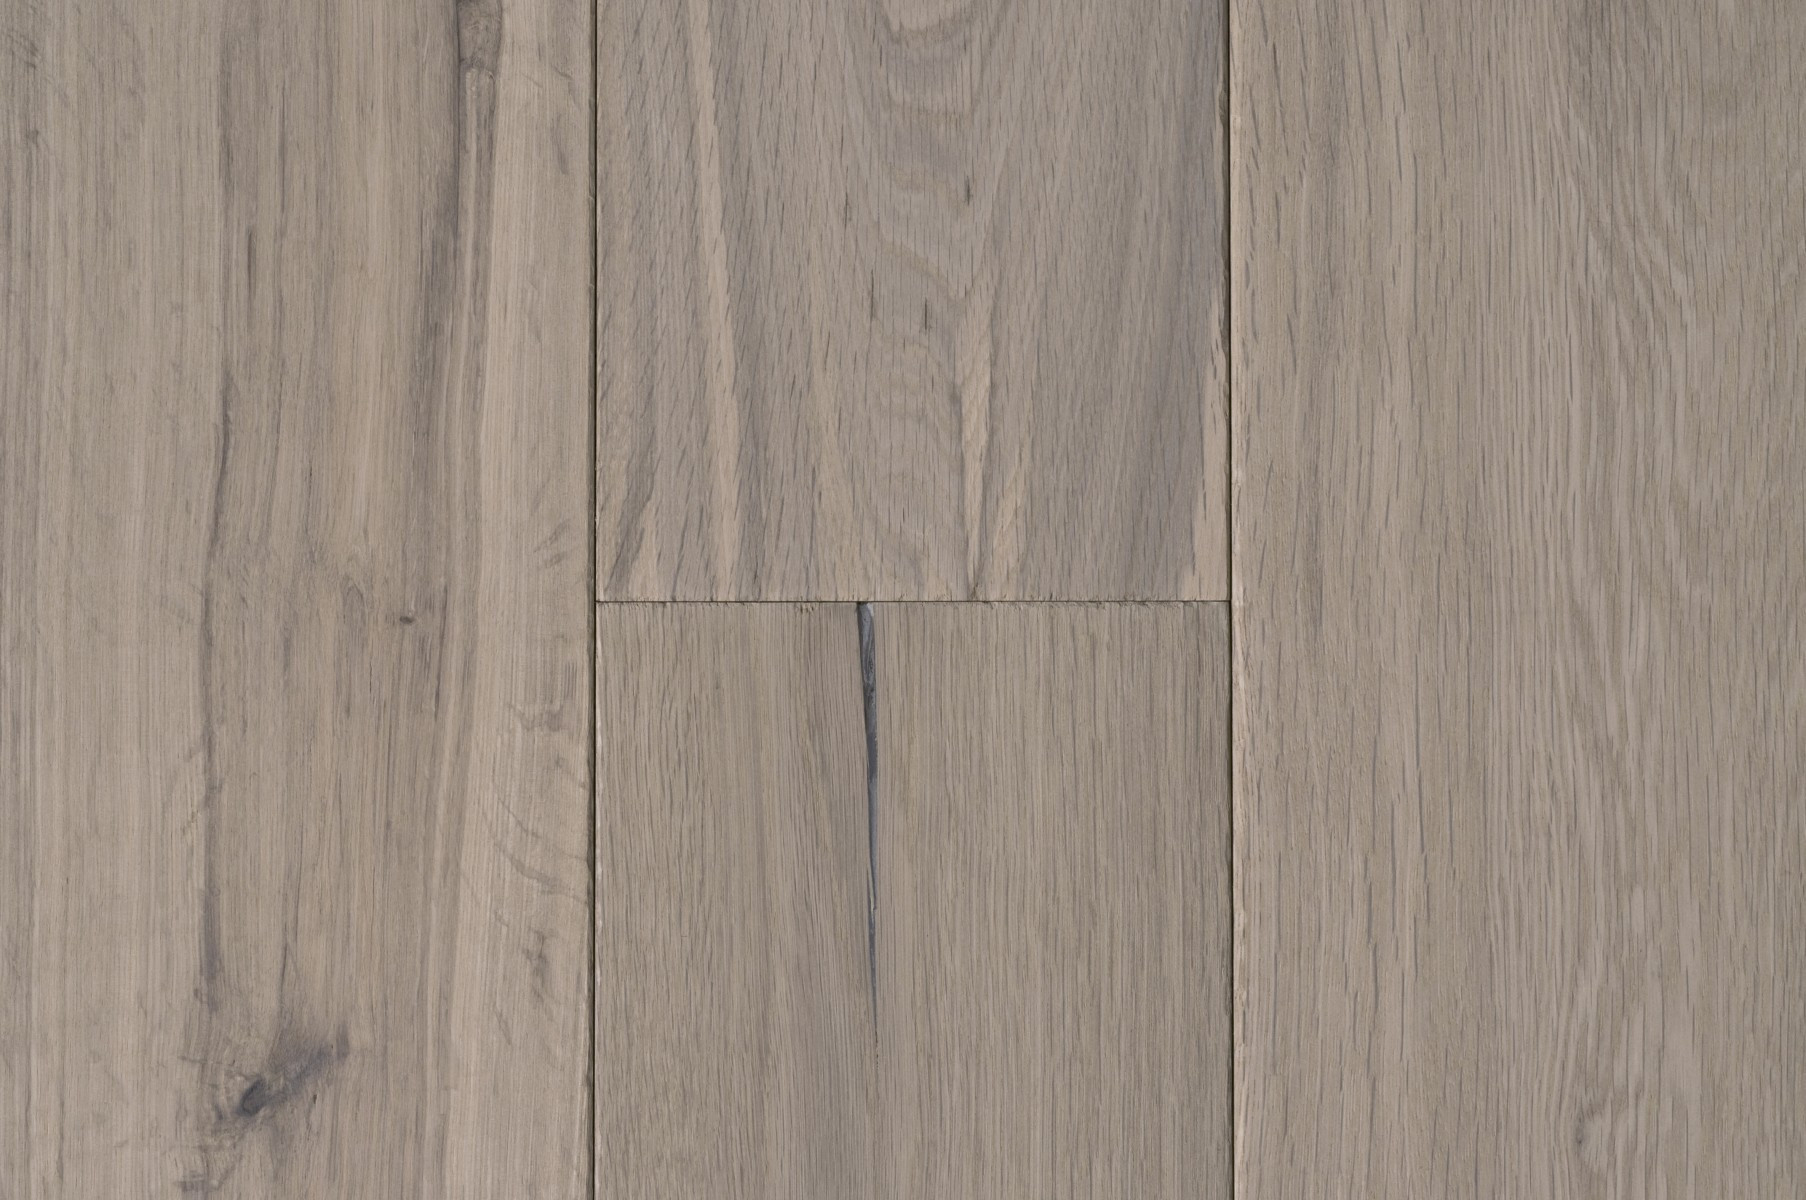 Distressed Hardwood Flooring Prices Of Duchateau Hardwood Flooring Houston Tx Discount Engineered Wood Inside Hardwood Floors A· Antique White European Oak